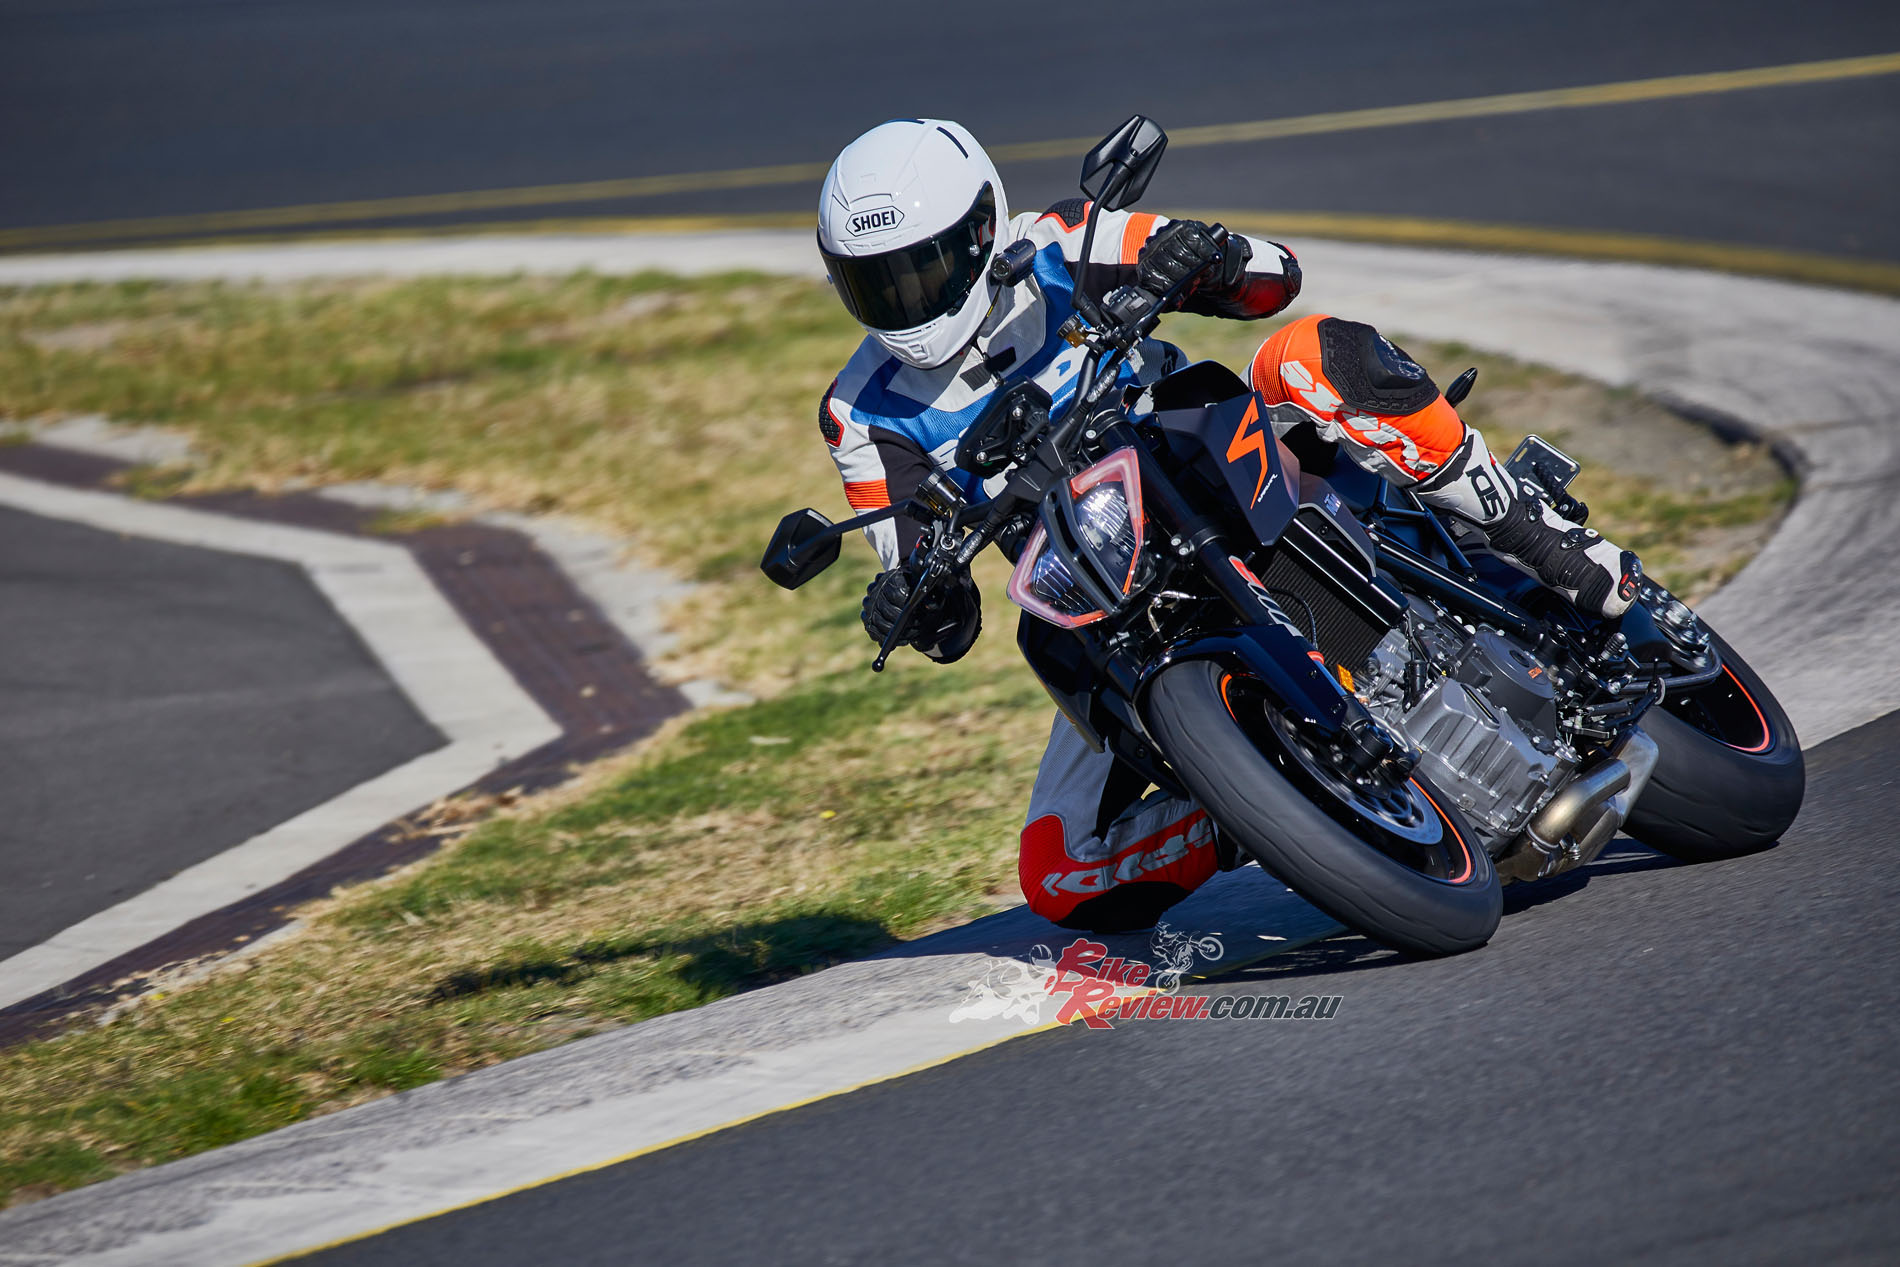 We will get the 2017 KTM 1290 Super Duke R back for a full road test soon so stay tuned.